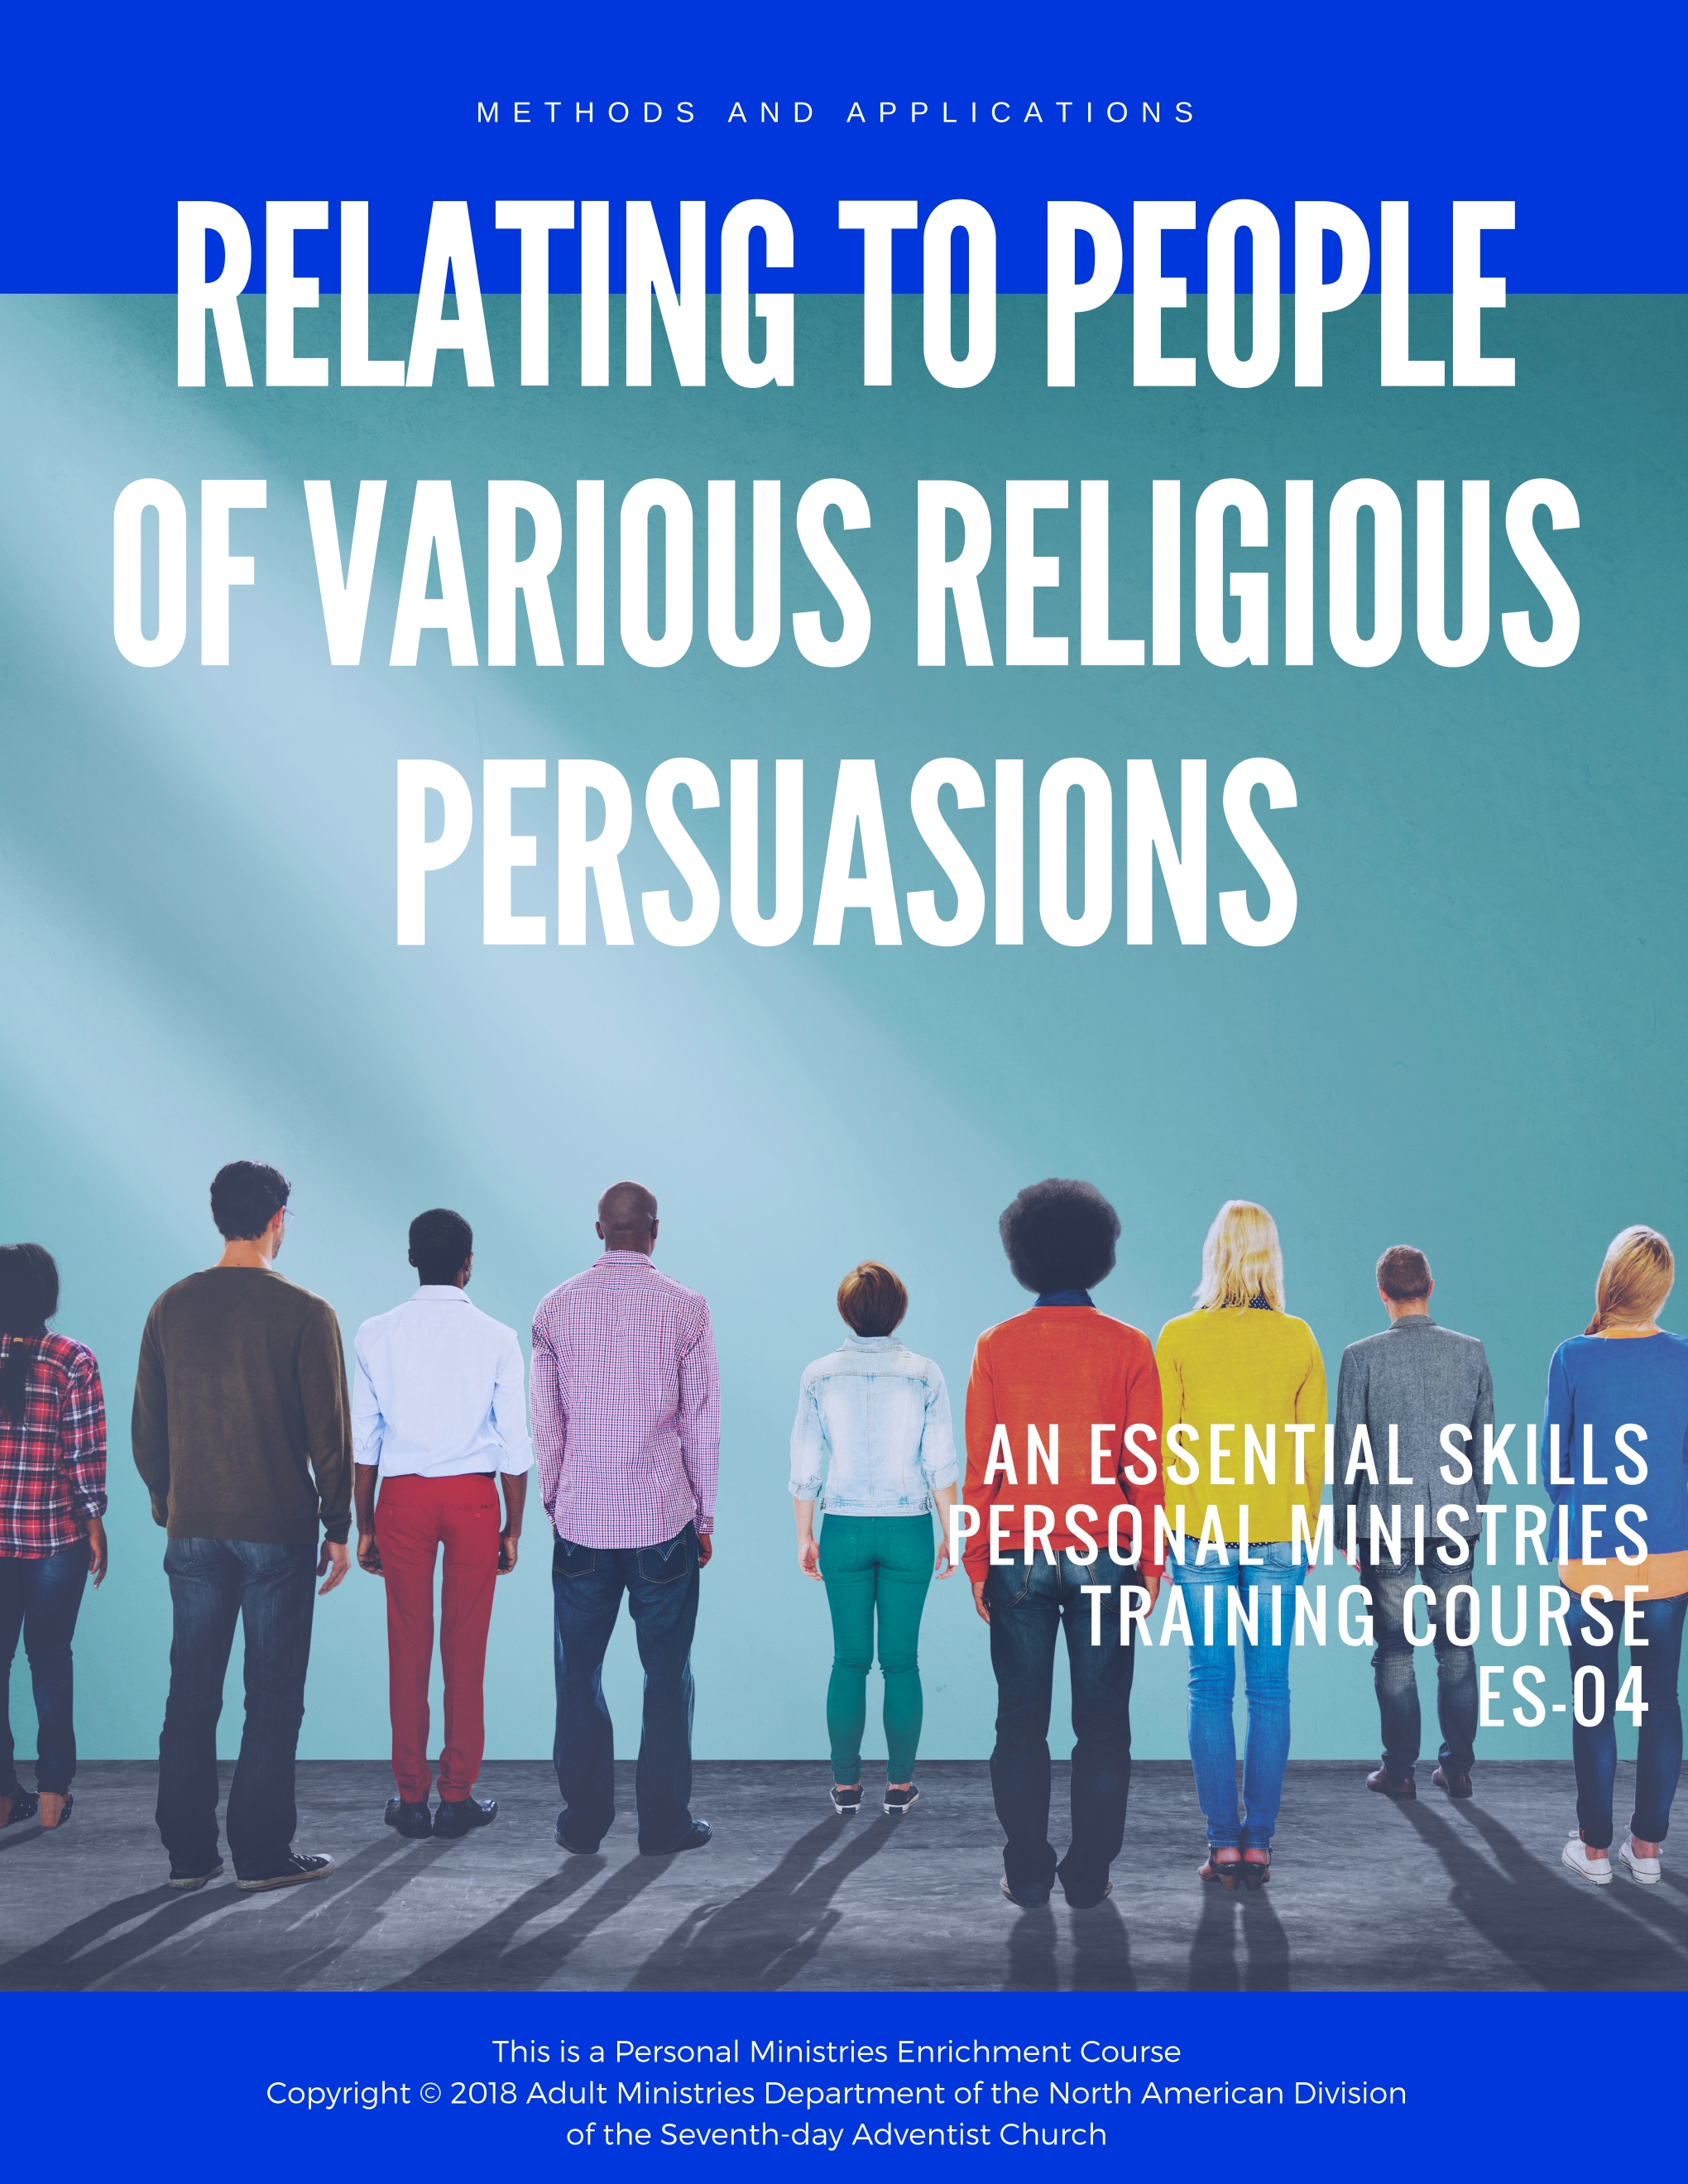 The objective of this course is to gain an understanding of belief systems encountered in giving Bible studies, presenting evangelistic sermons, or in a personal ministries participant conversation with anyone on religious topics. - <<click the cover to view